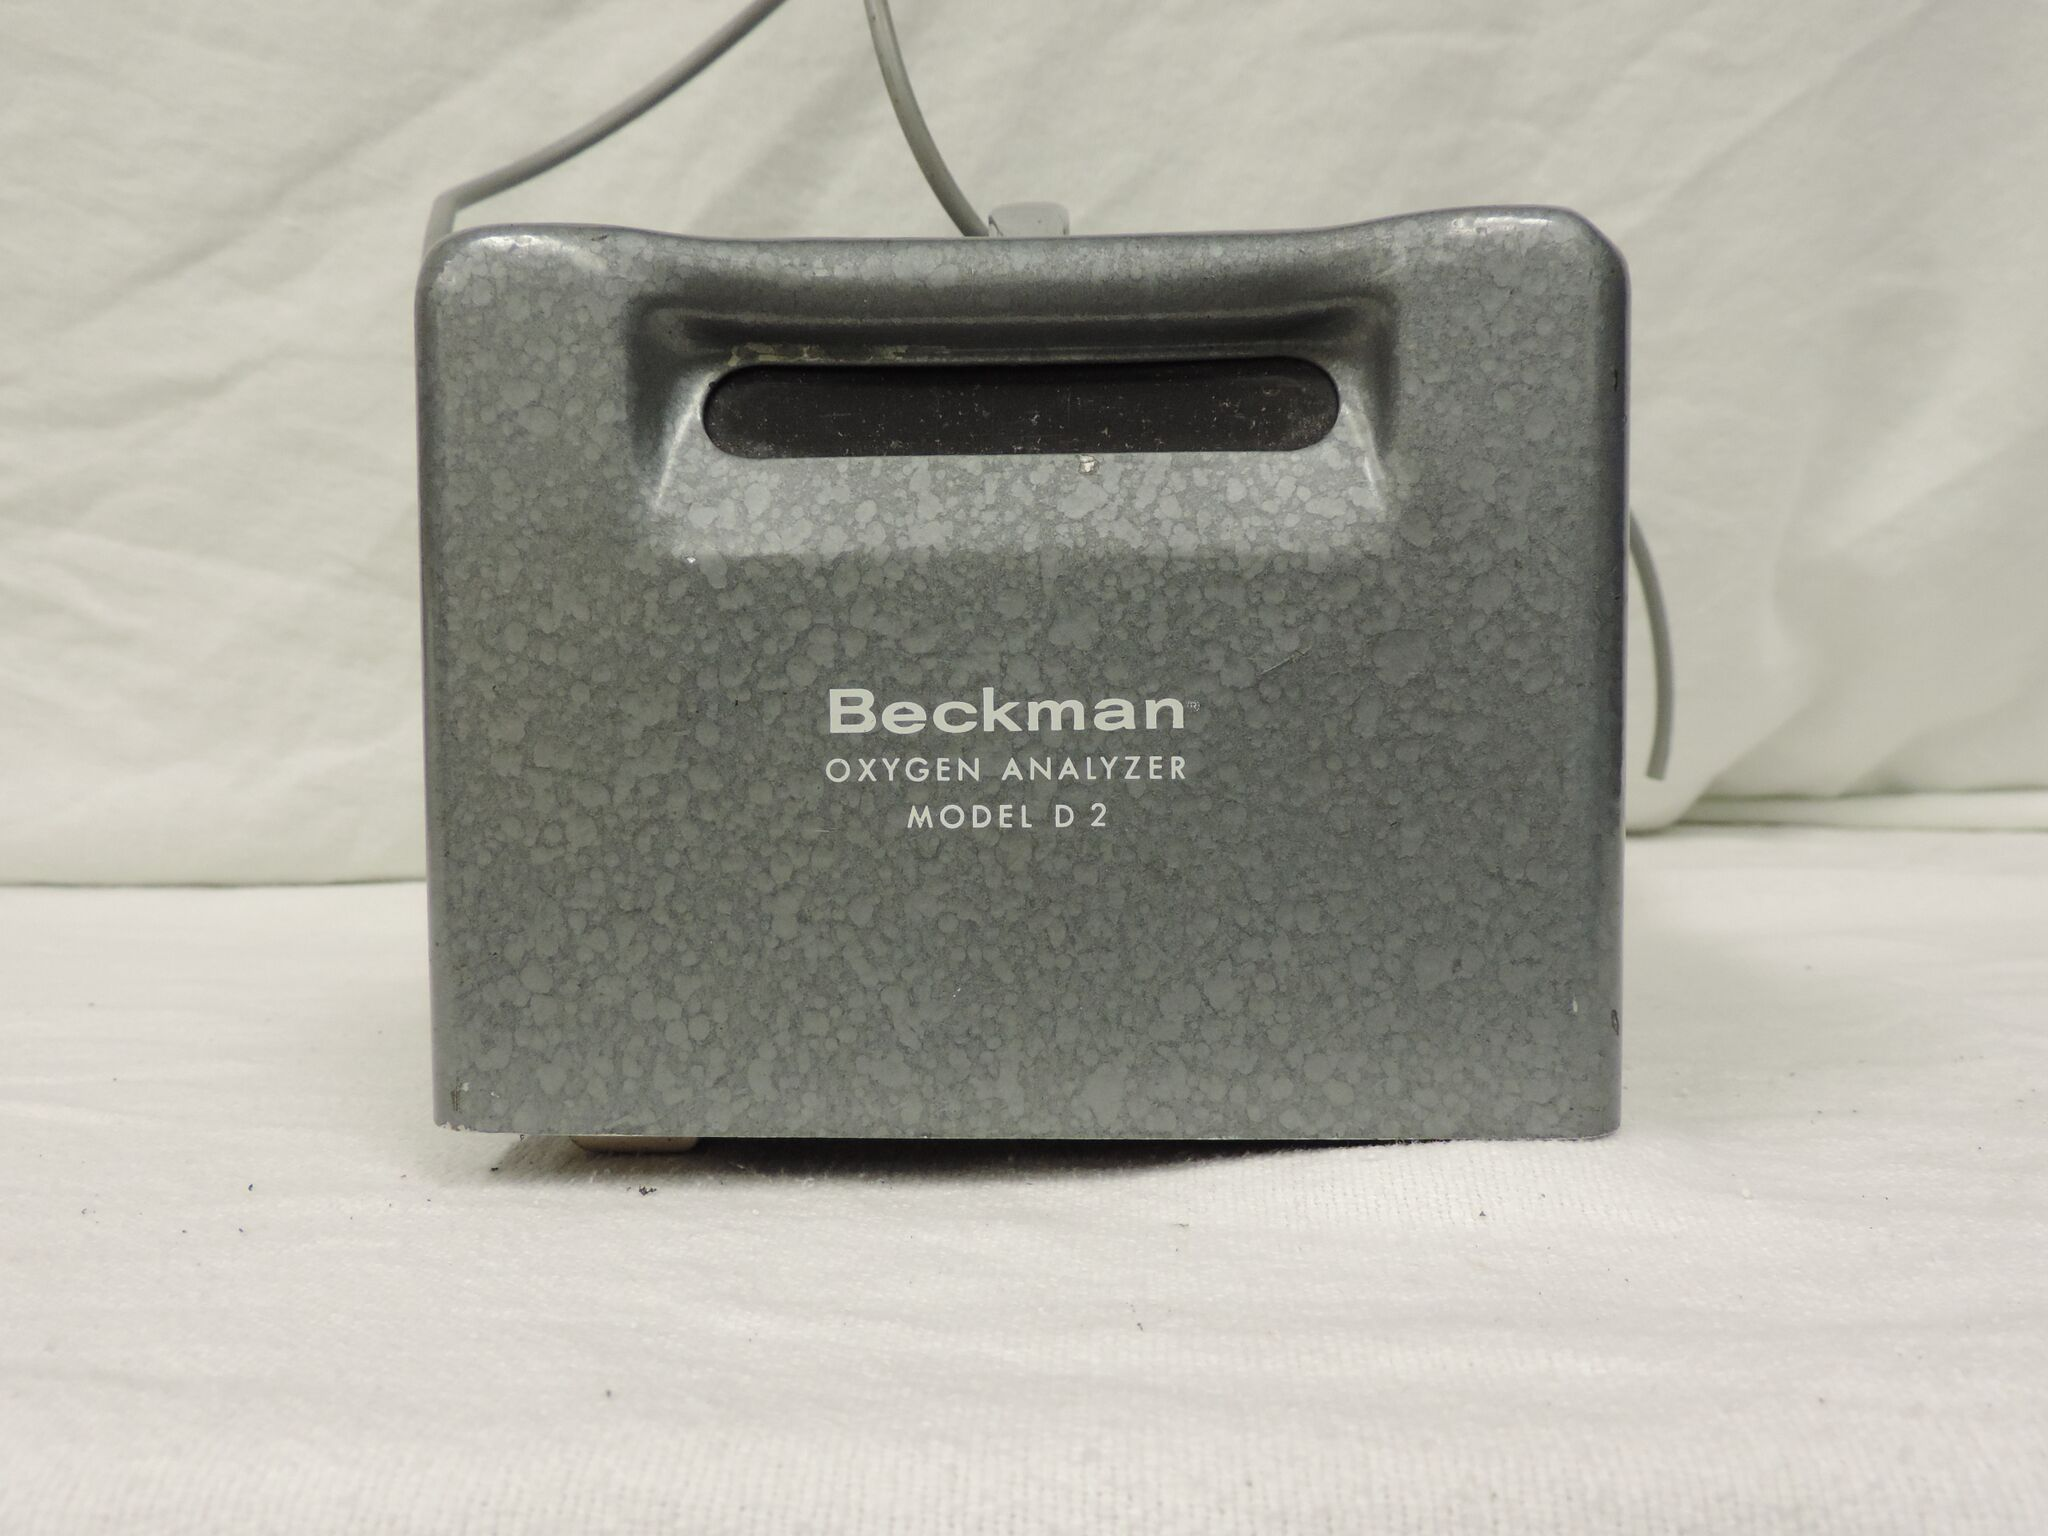 Beckman D-2 Analyzer